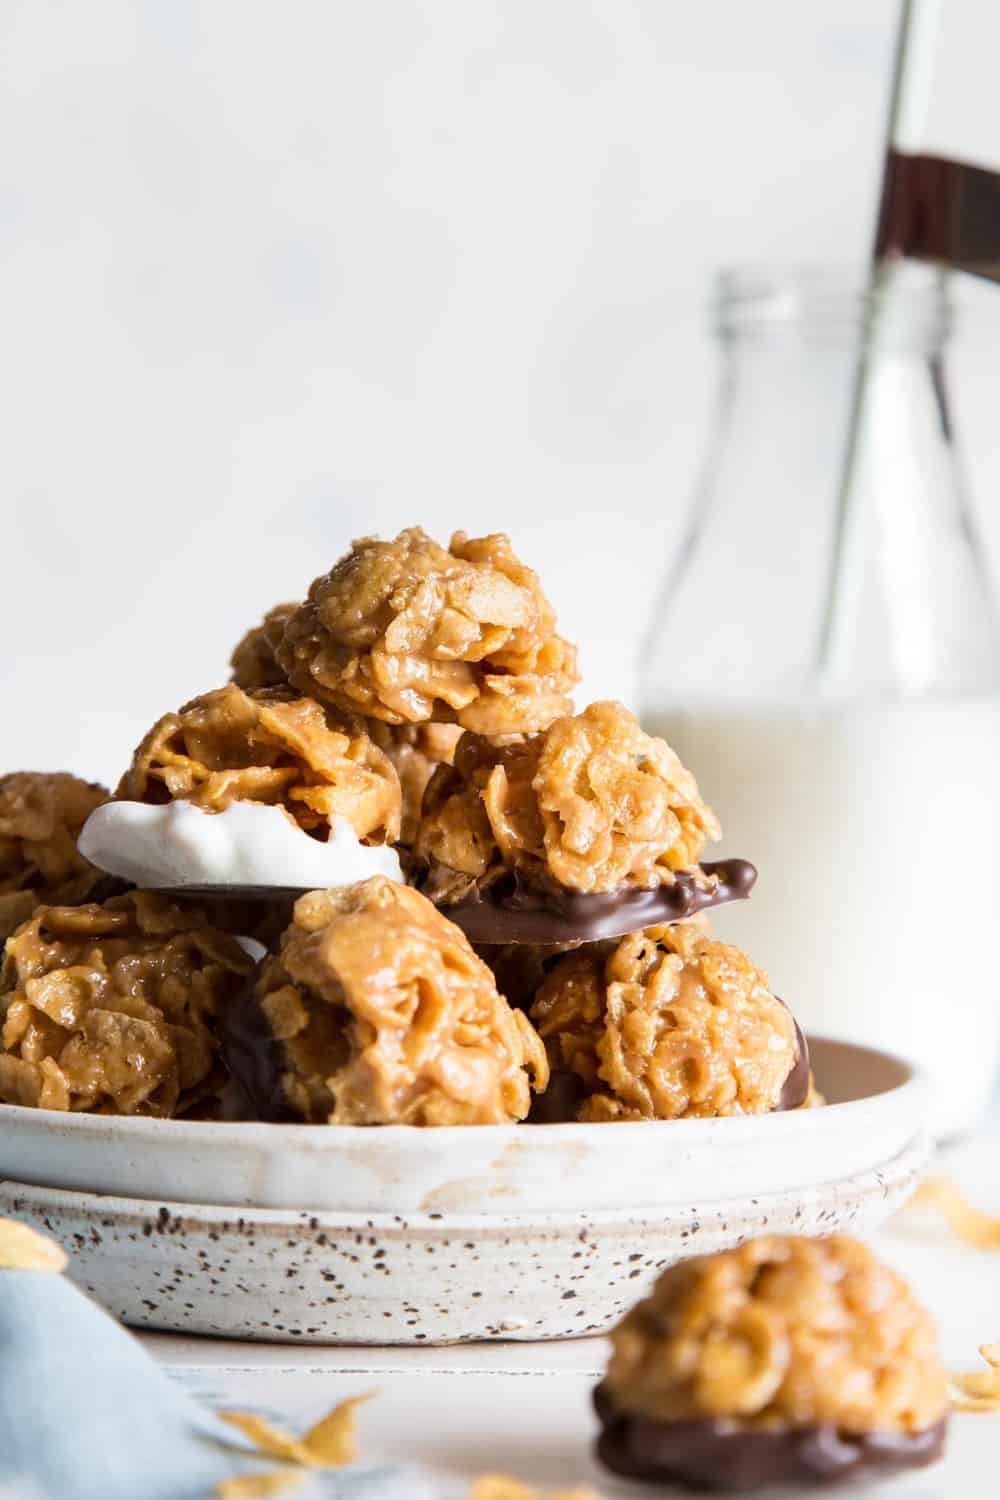 Peanut butter cornflake cookies on a plate